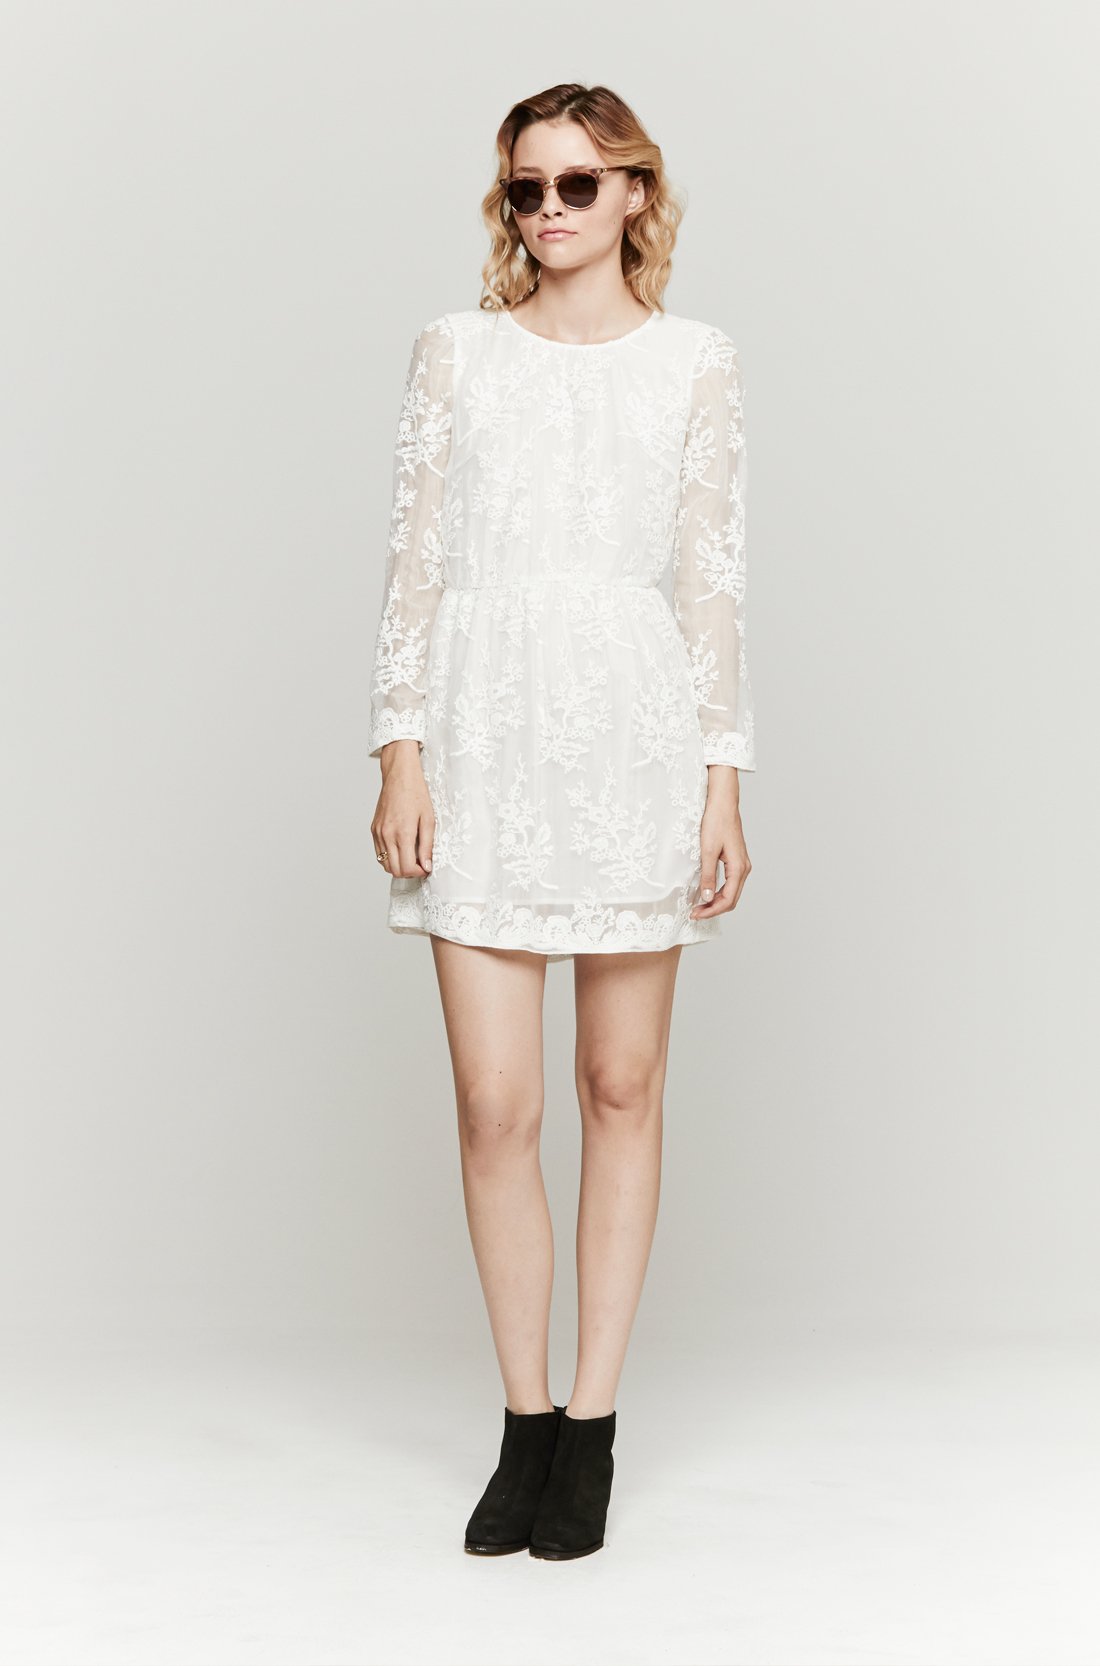 6a5cde9eca34 Zimmermann Celestial Embroidered Dress in White - Lyst